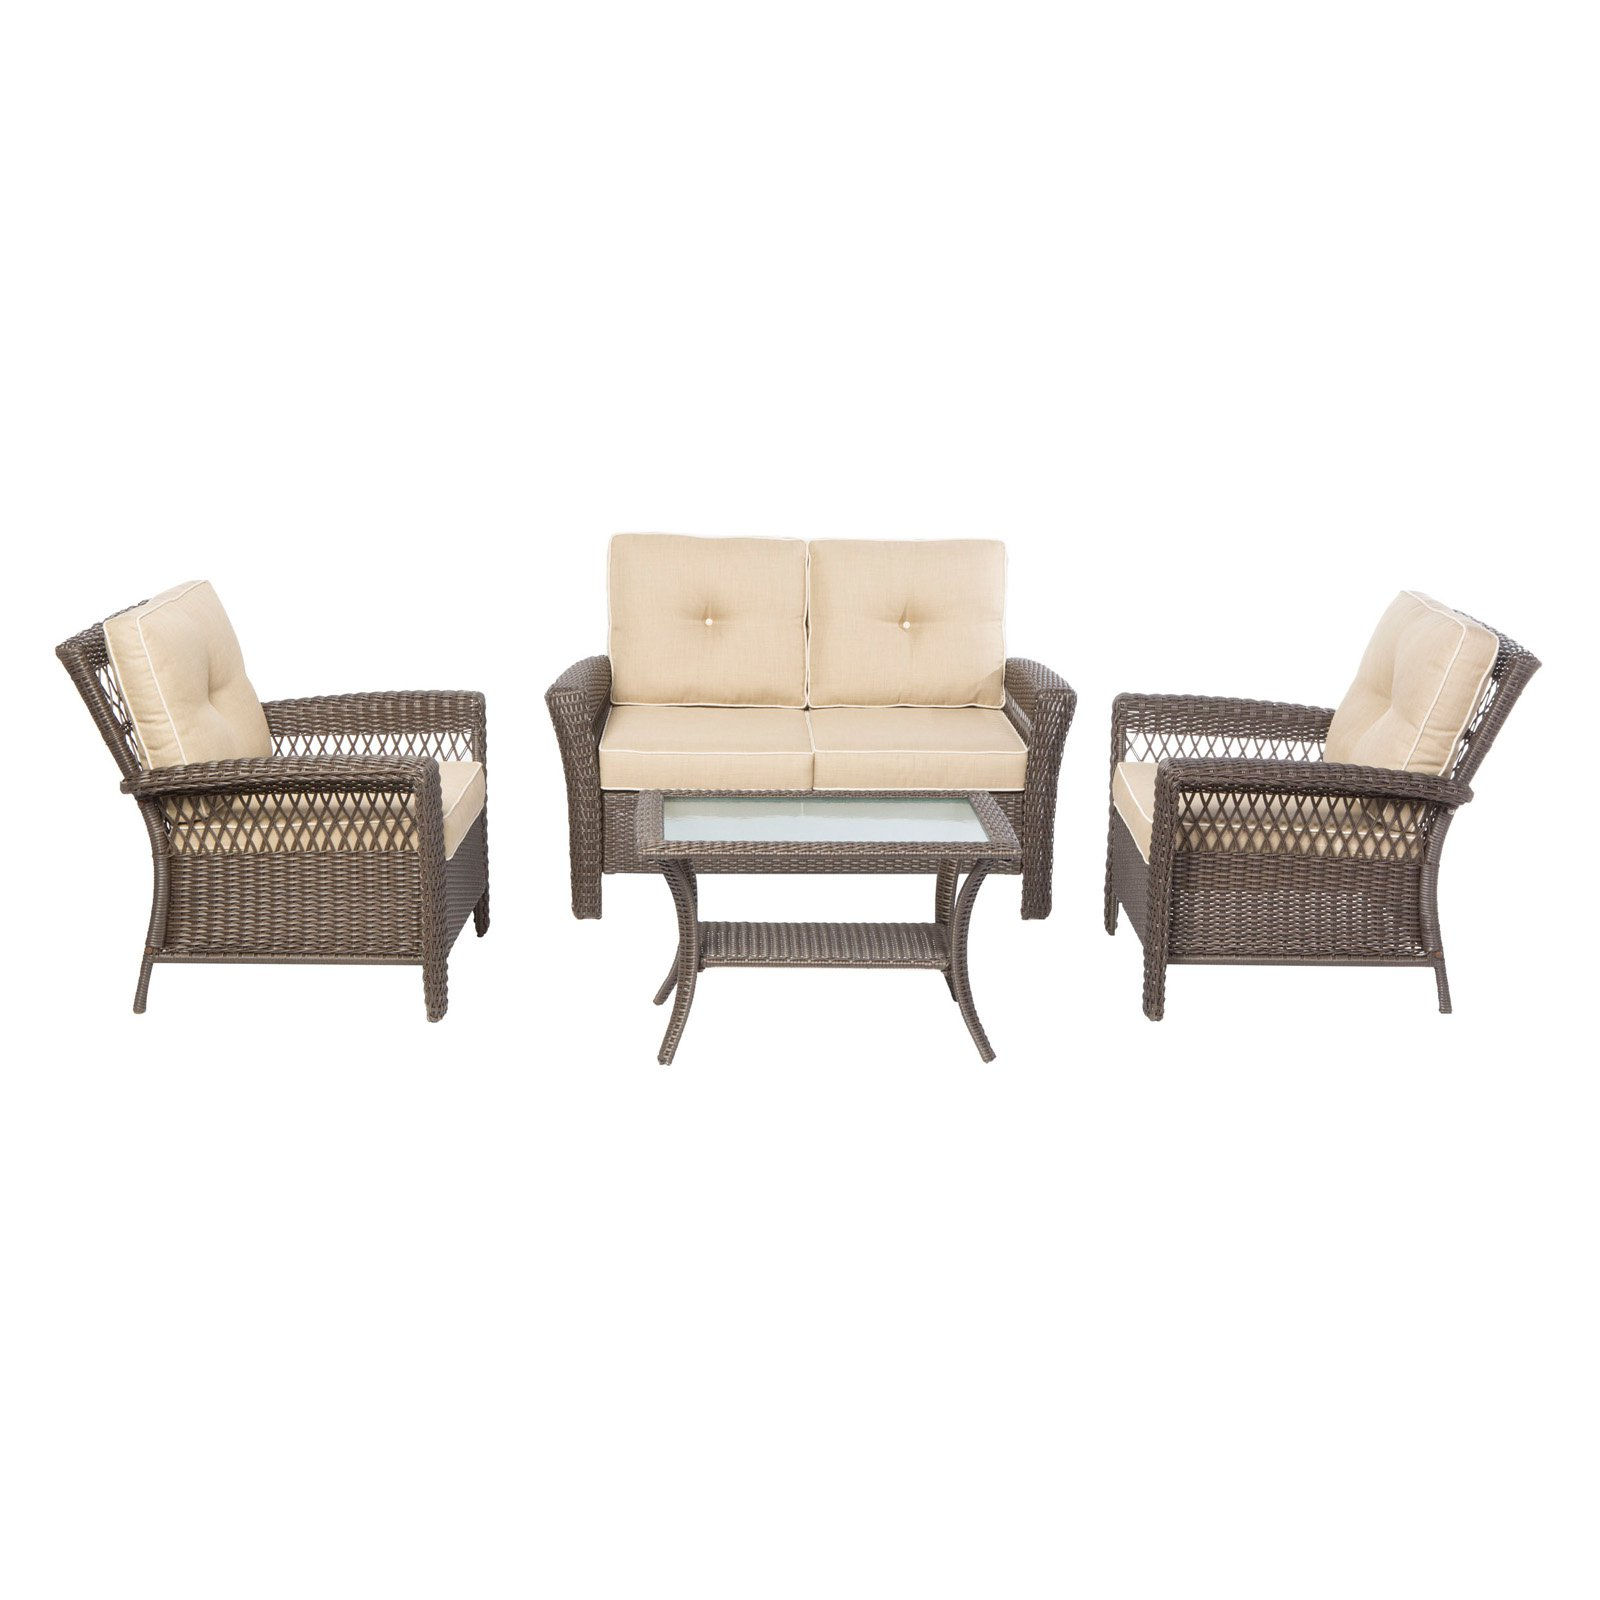 Alfresco Home Isabella All Weather Wicker 4 Piece Convers...